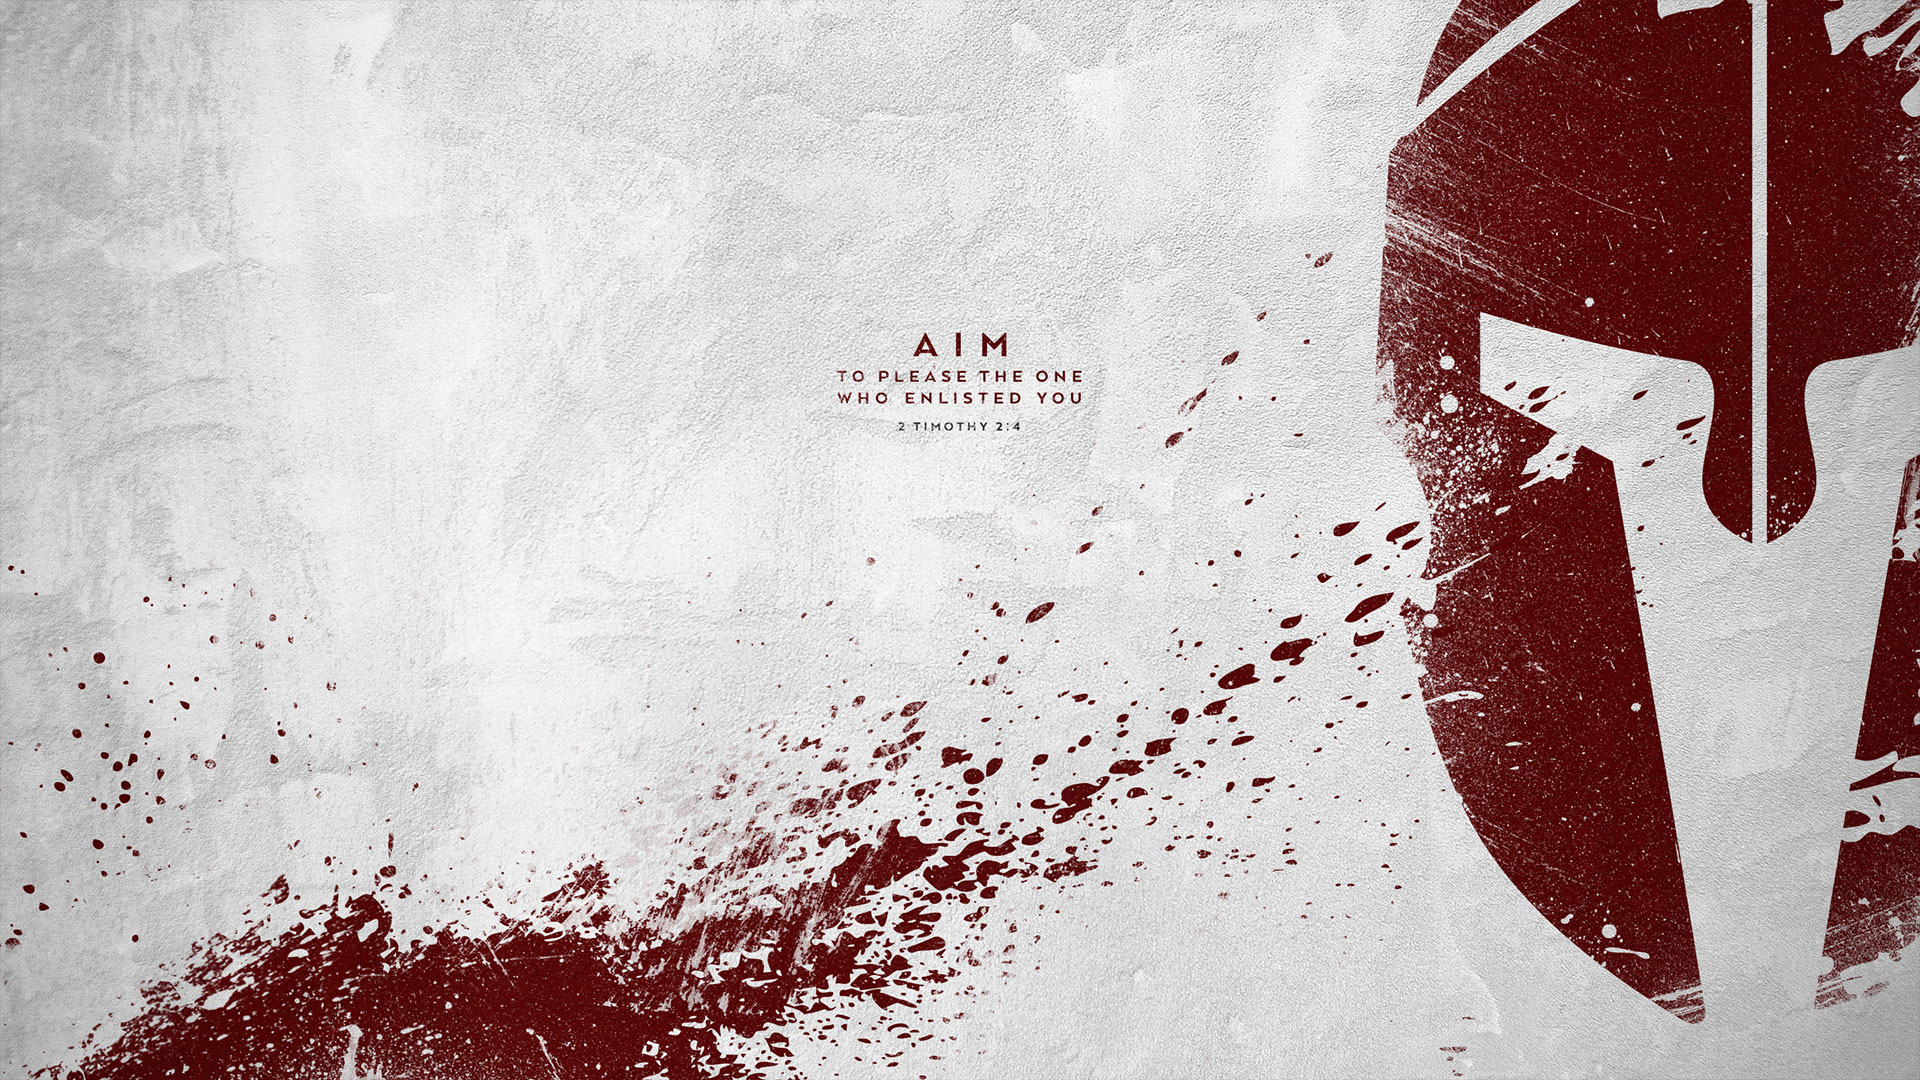 AIM Wallpapers Wallpapers Adorable